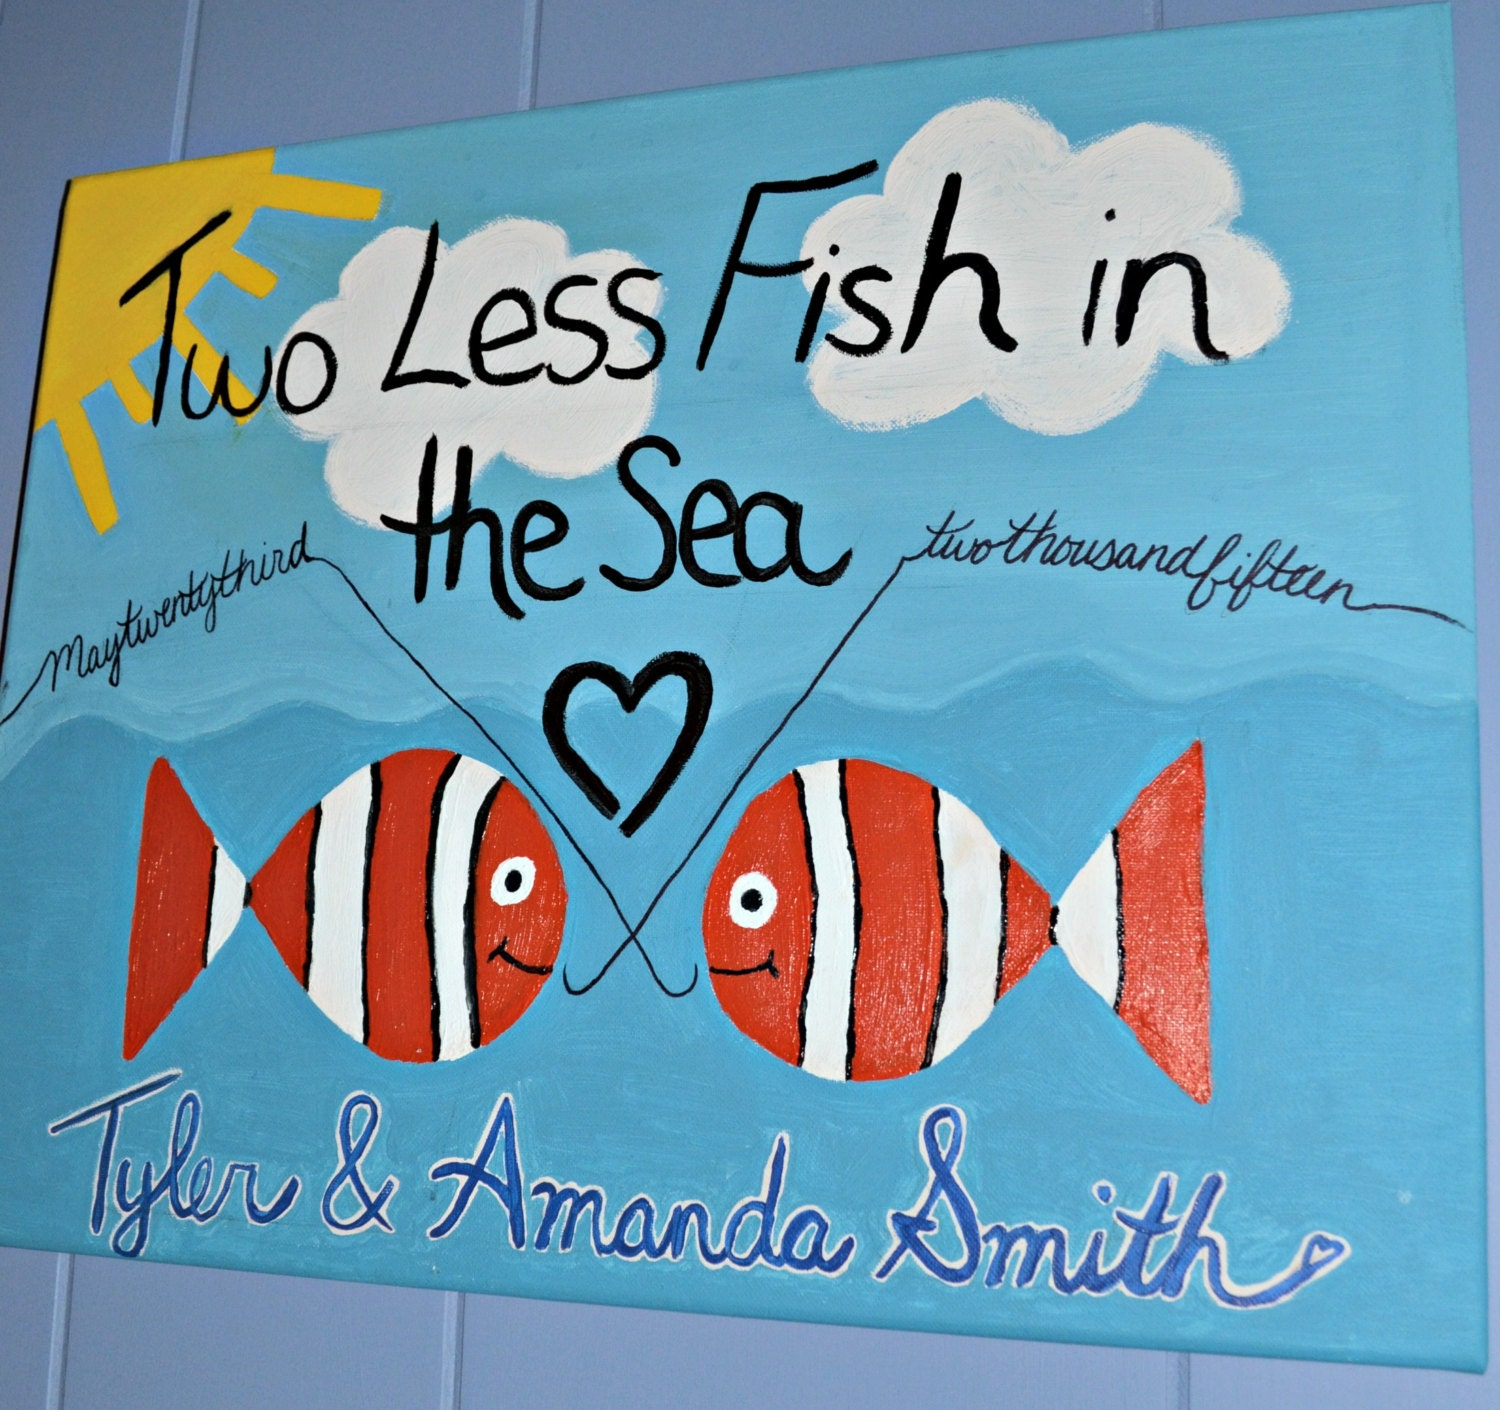 Two less fish in the sea canvas wedding gift for Two less fish in the sea